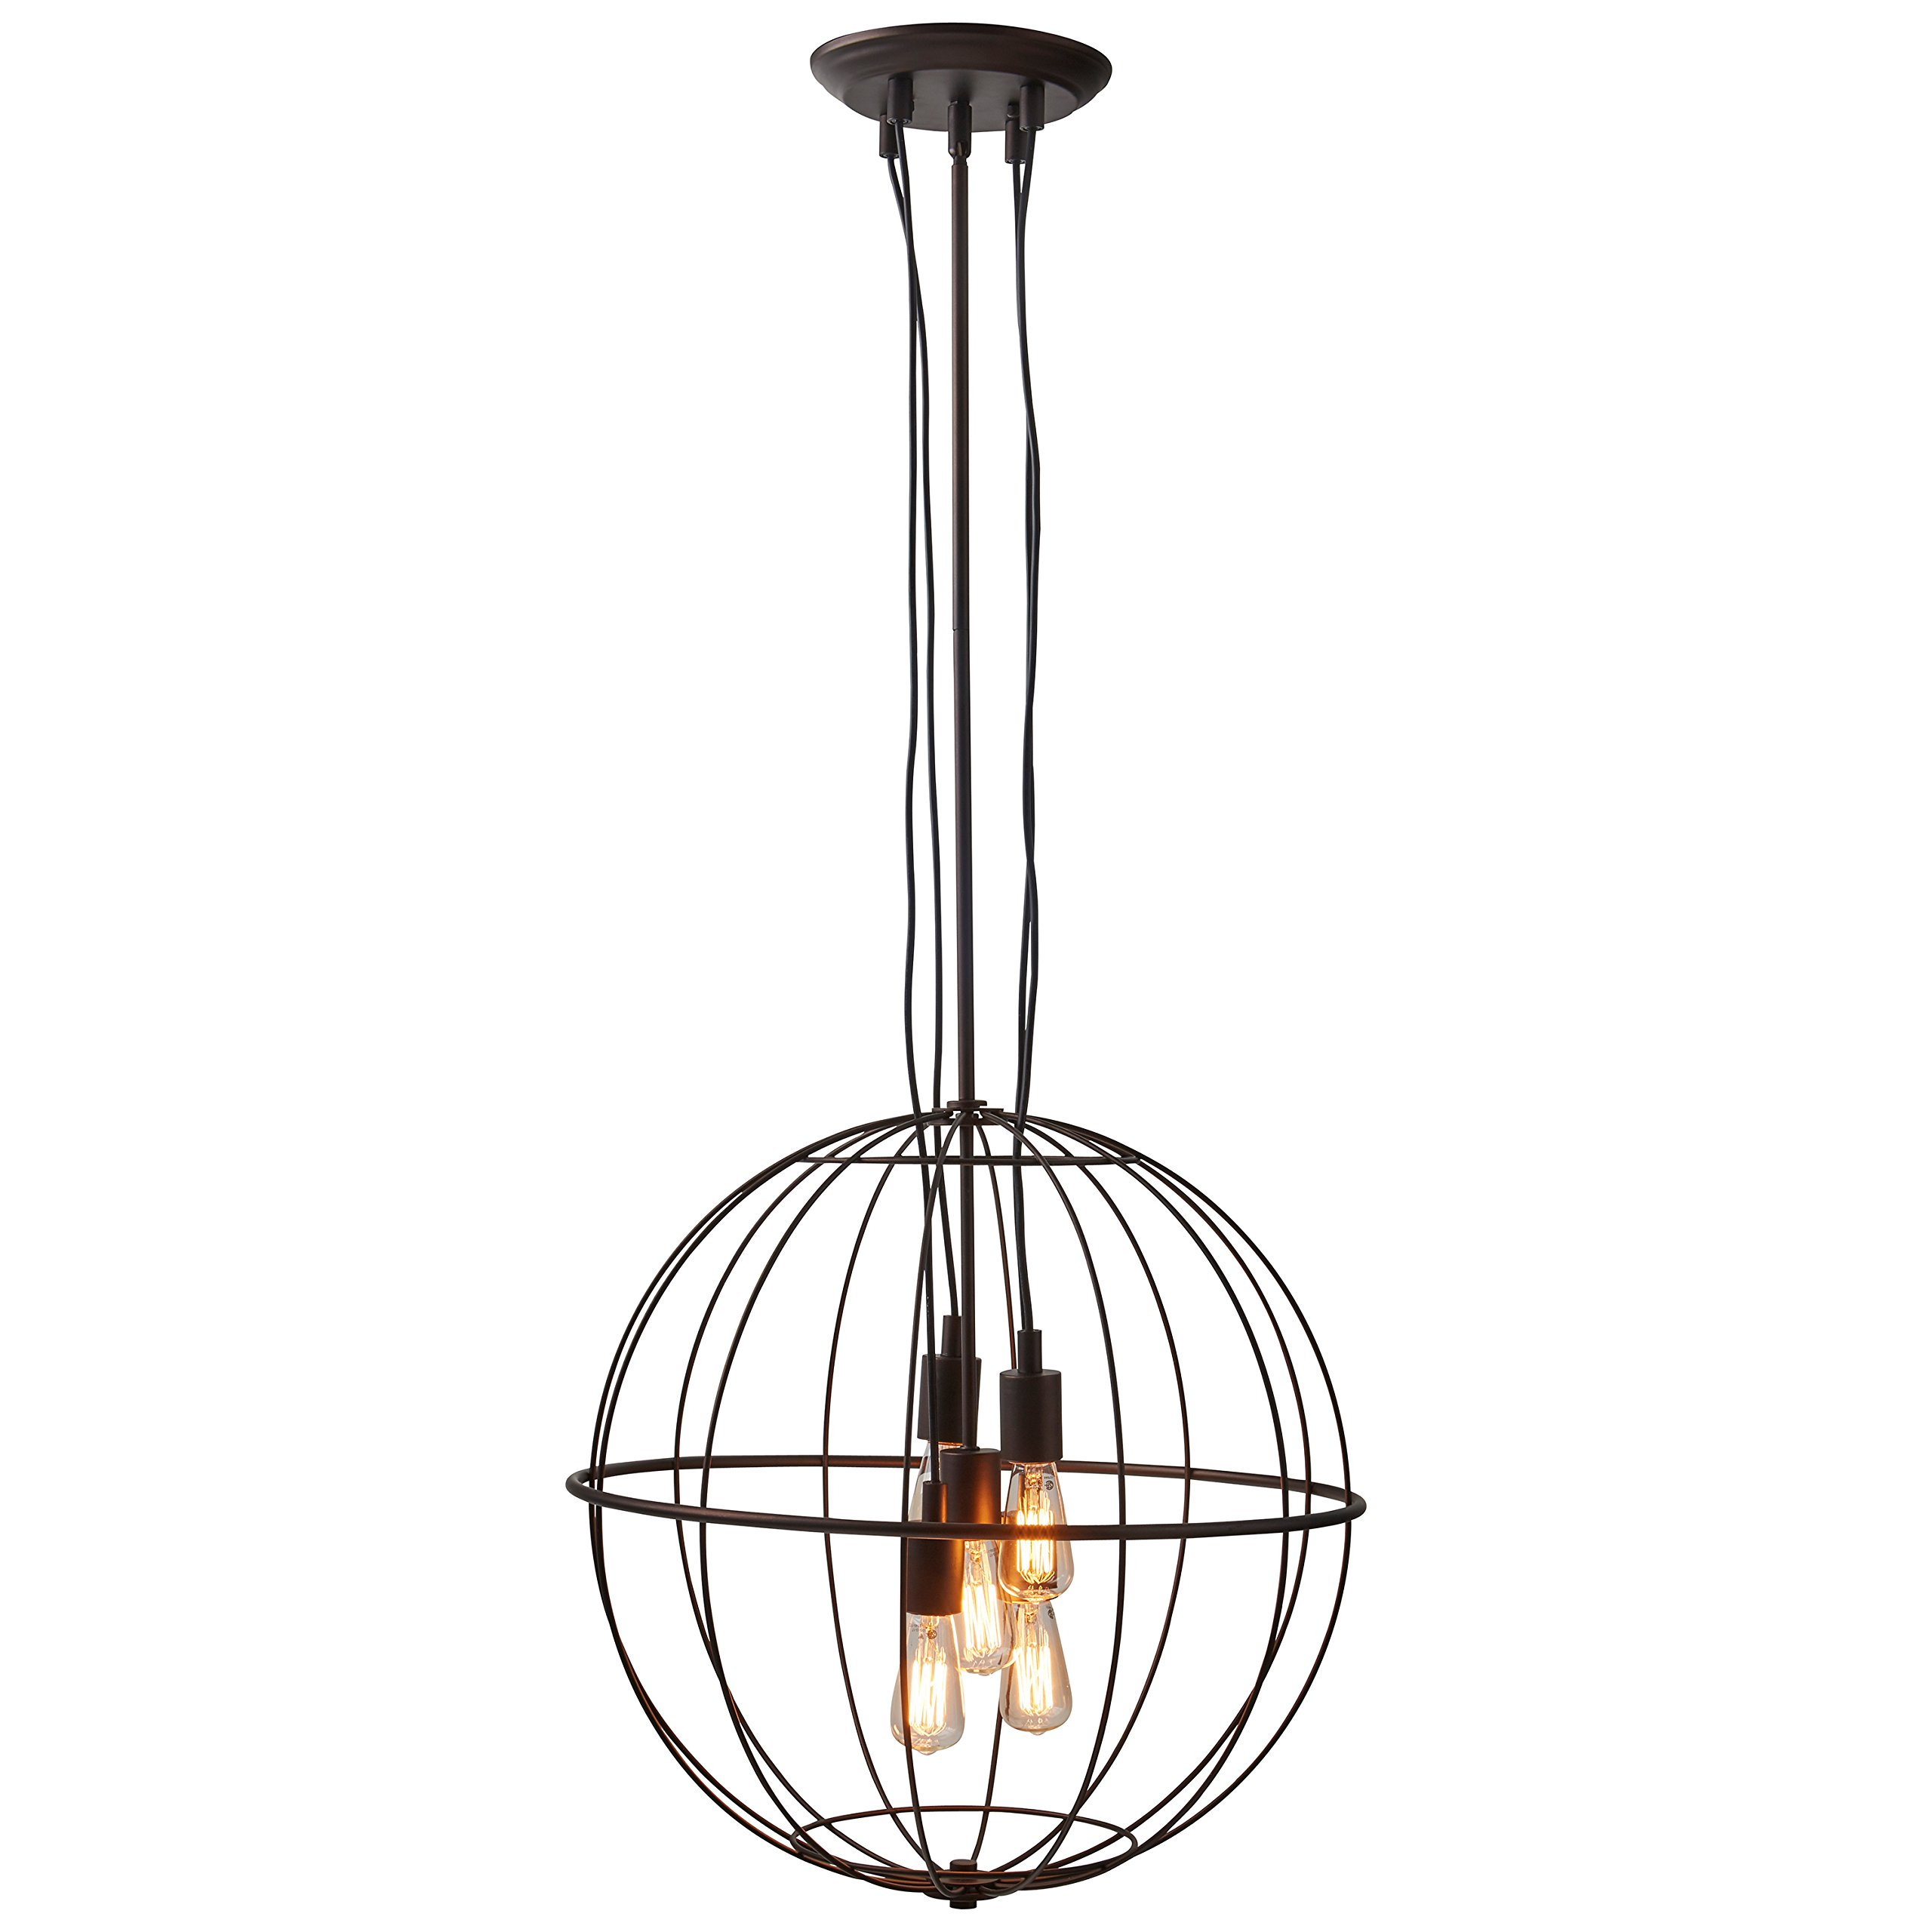 Stone & Beam Industrial Chandelier With Bulbs, 35.5''-47.5'' H, Oil-Rubbed Bronze